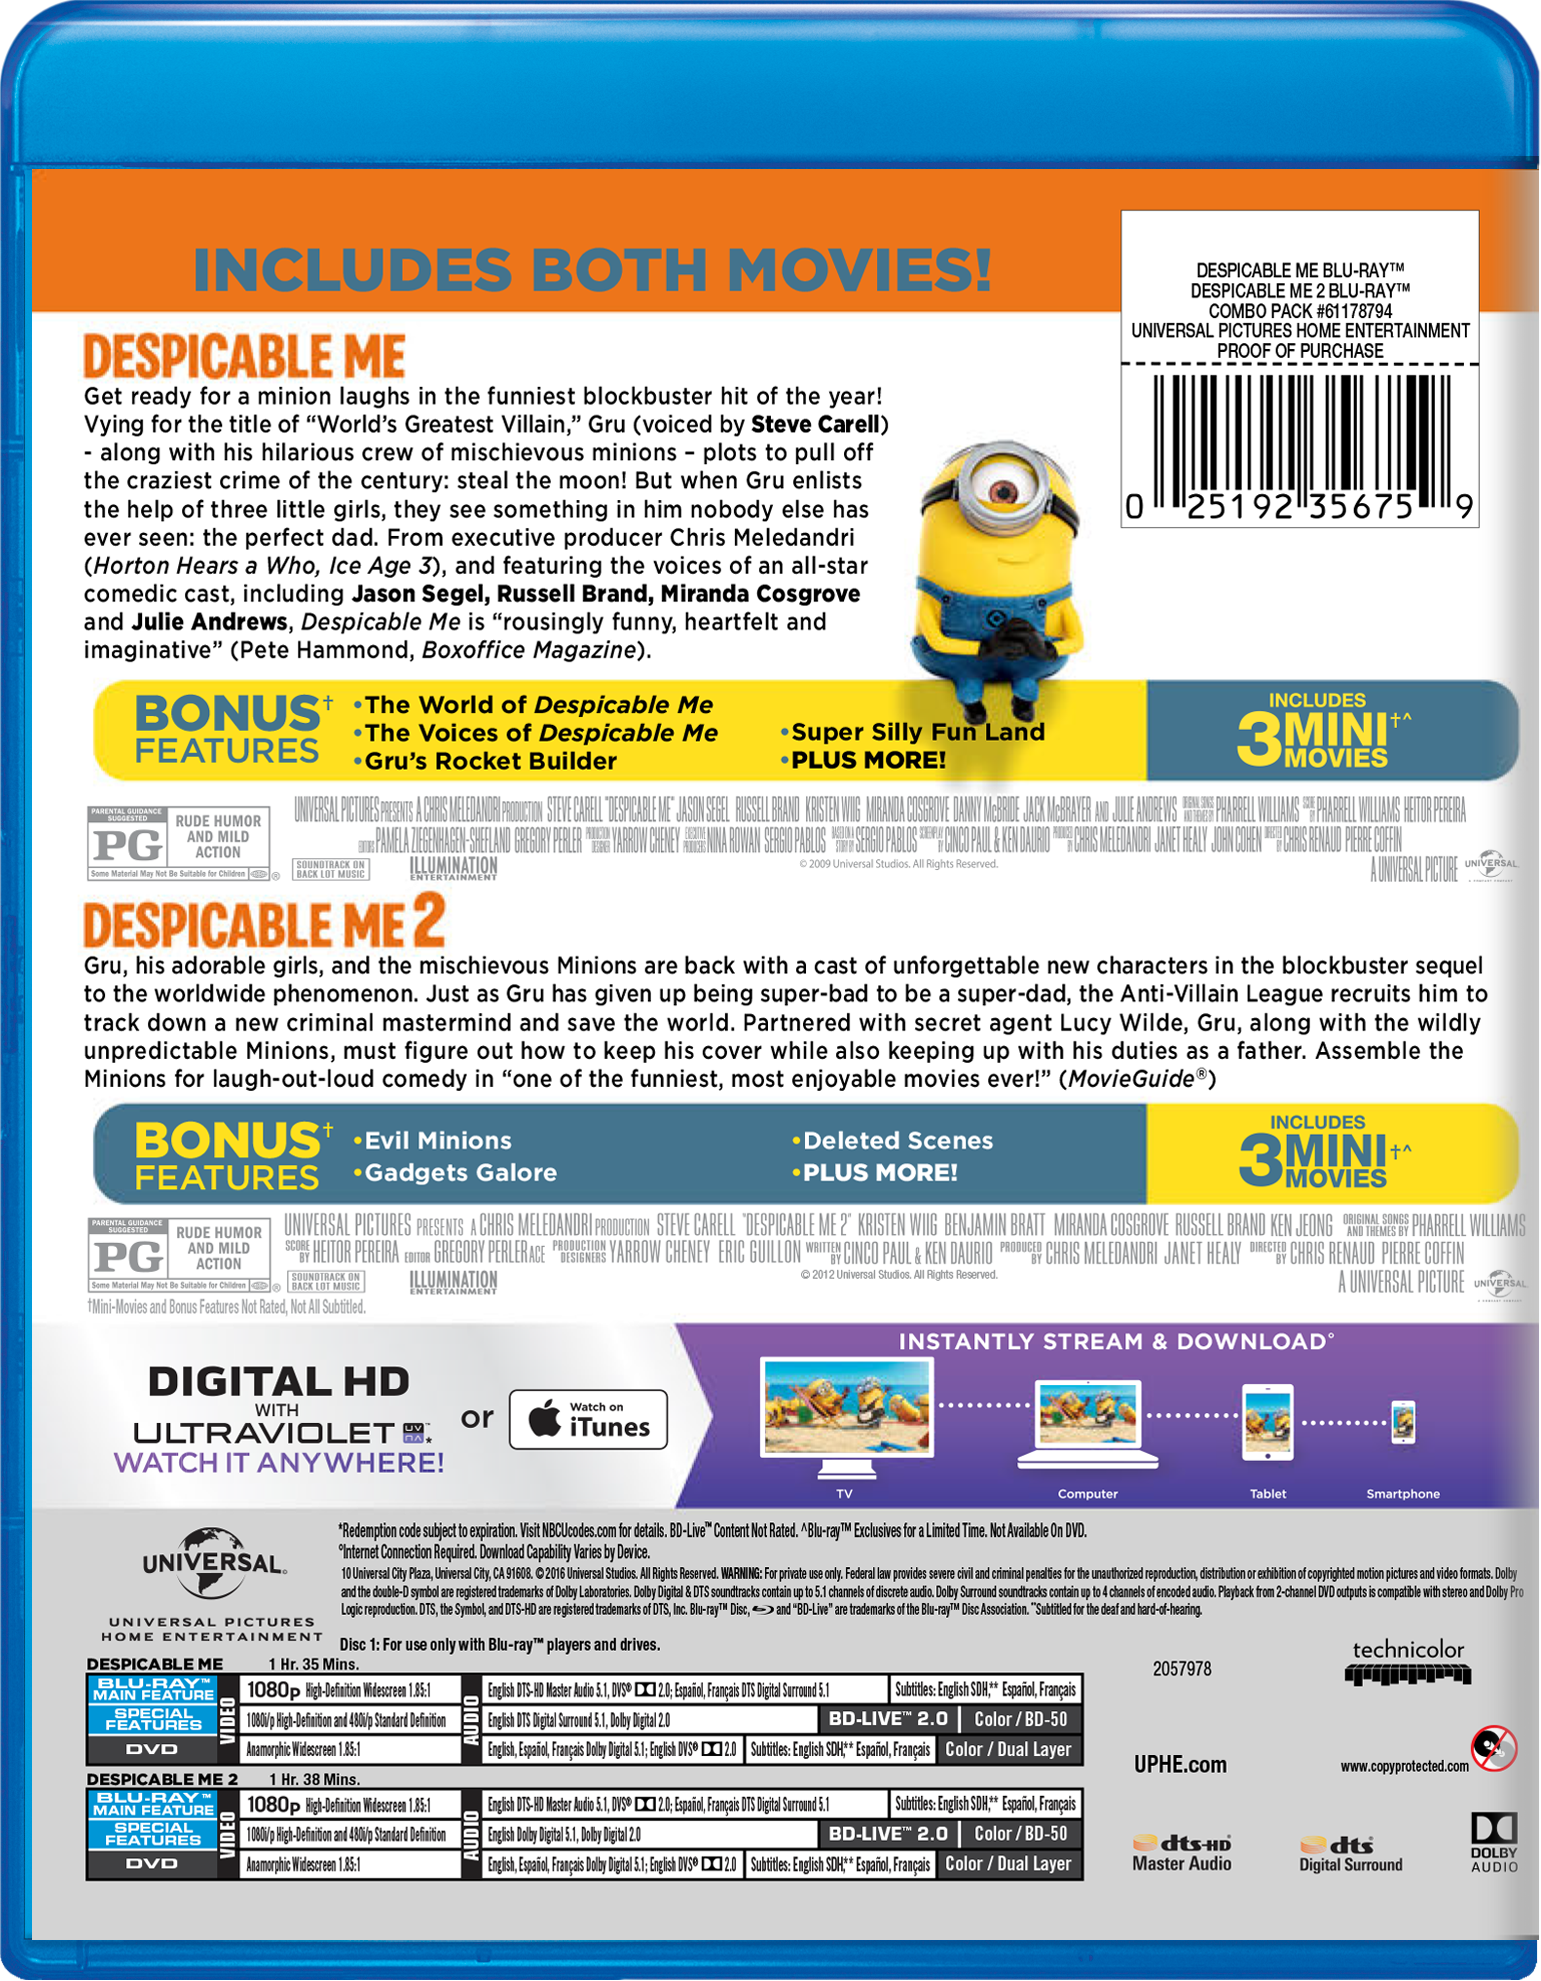 despicable me 2010 full movie download mp4